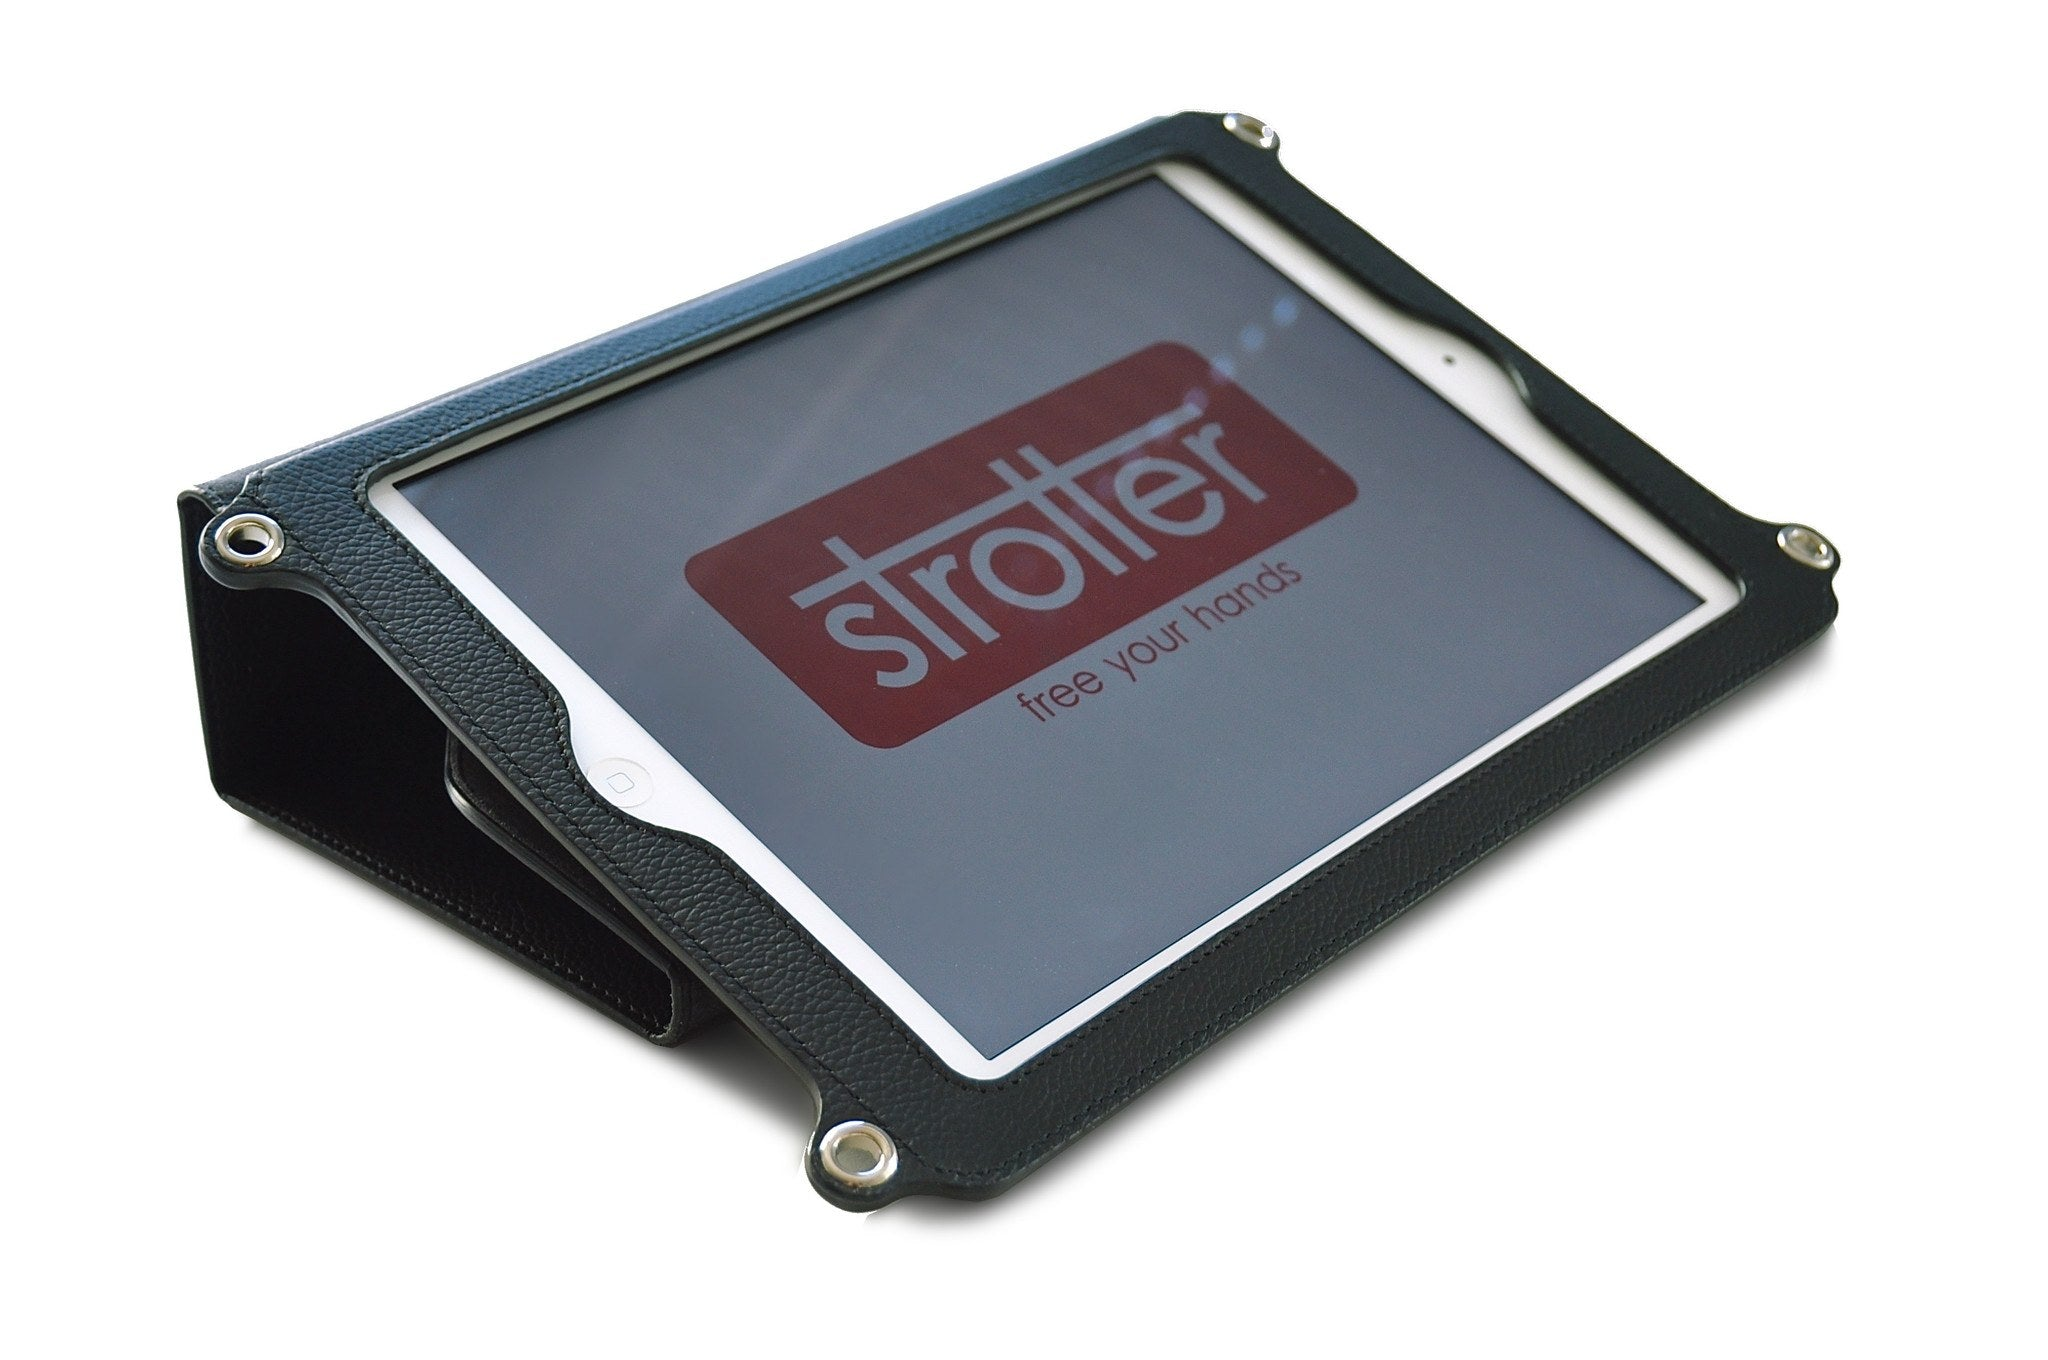 iPad case by Strotter